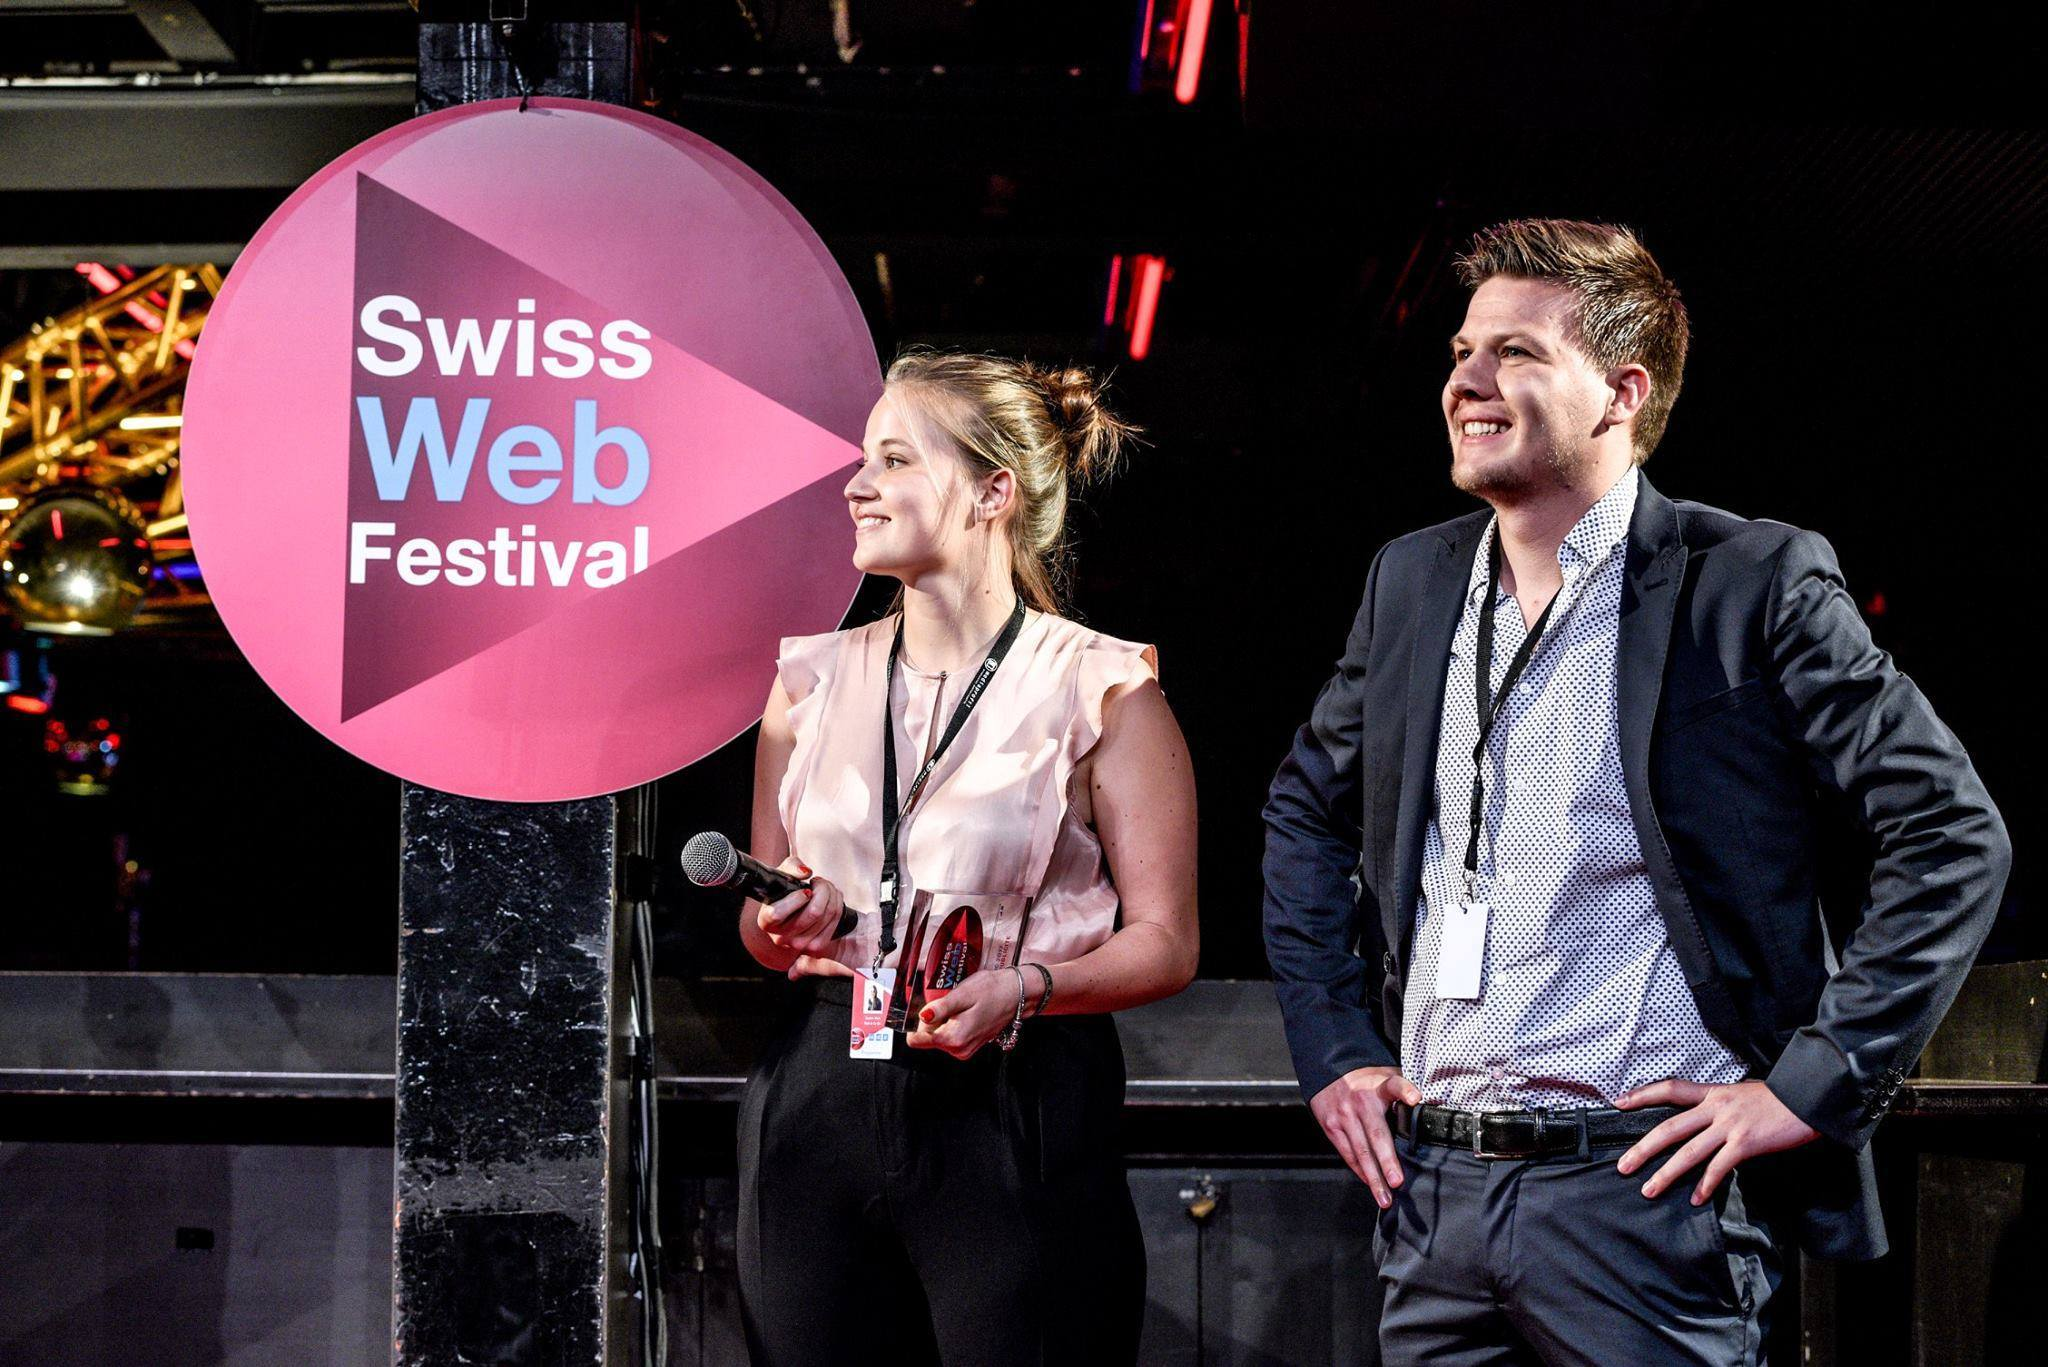 swiss web festival award